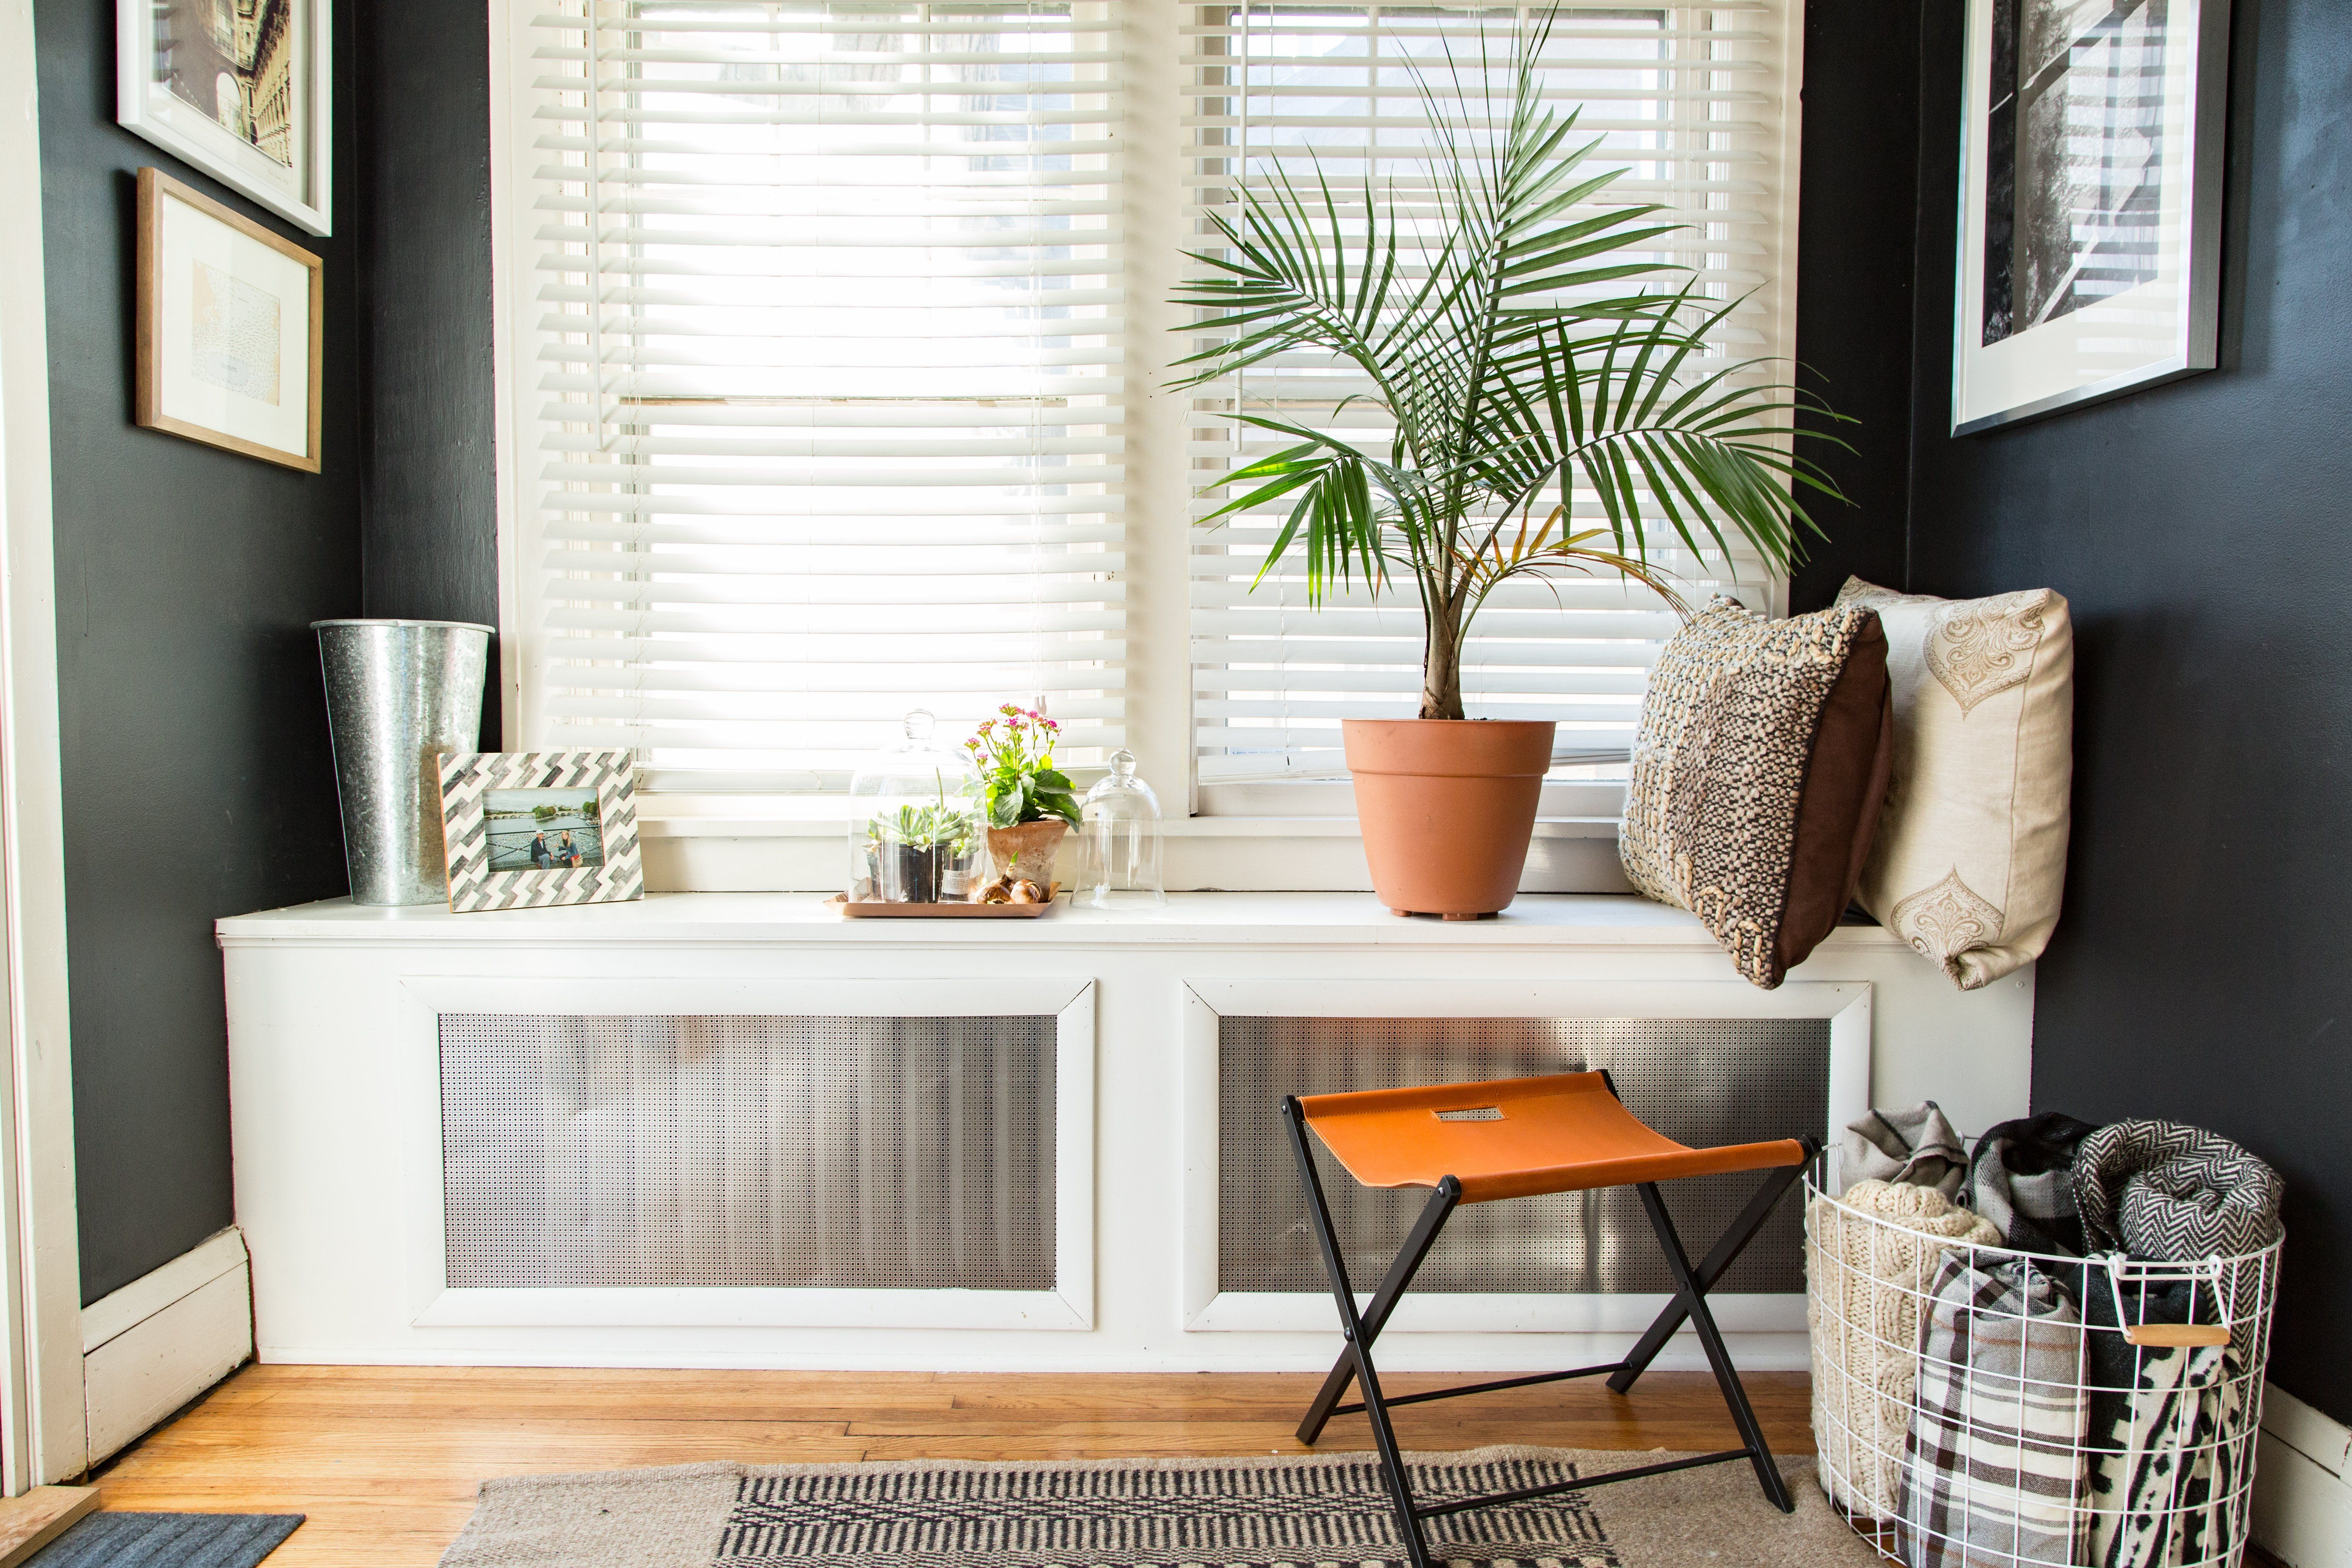 Paint colors that match this Apartment Therapy photo: SW 9011 Sun ...